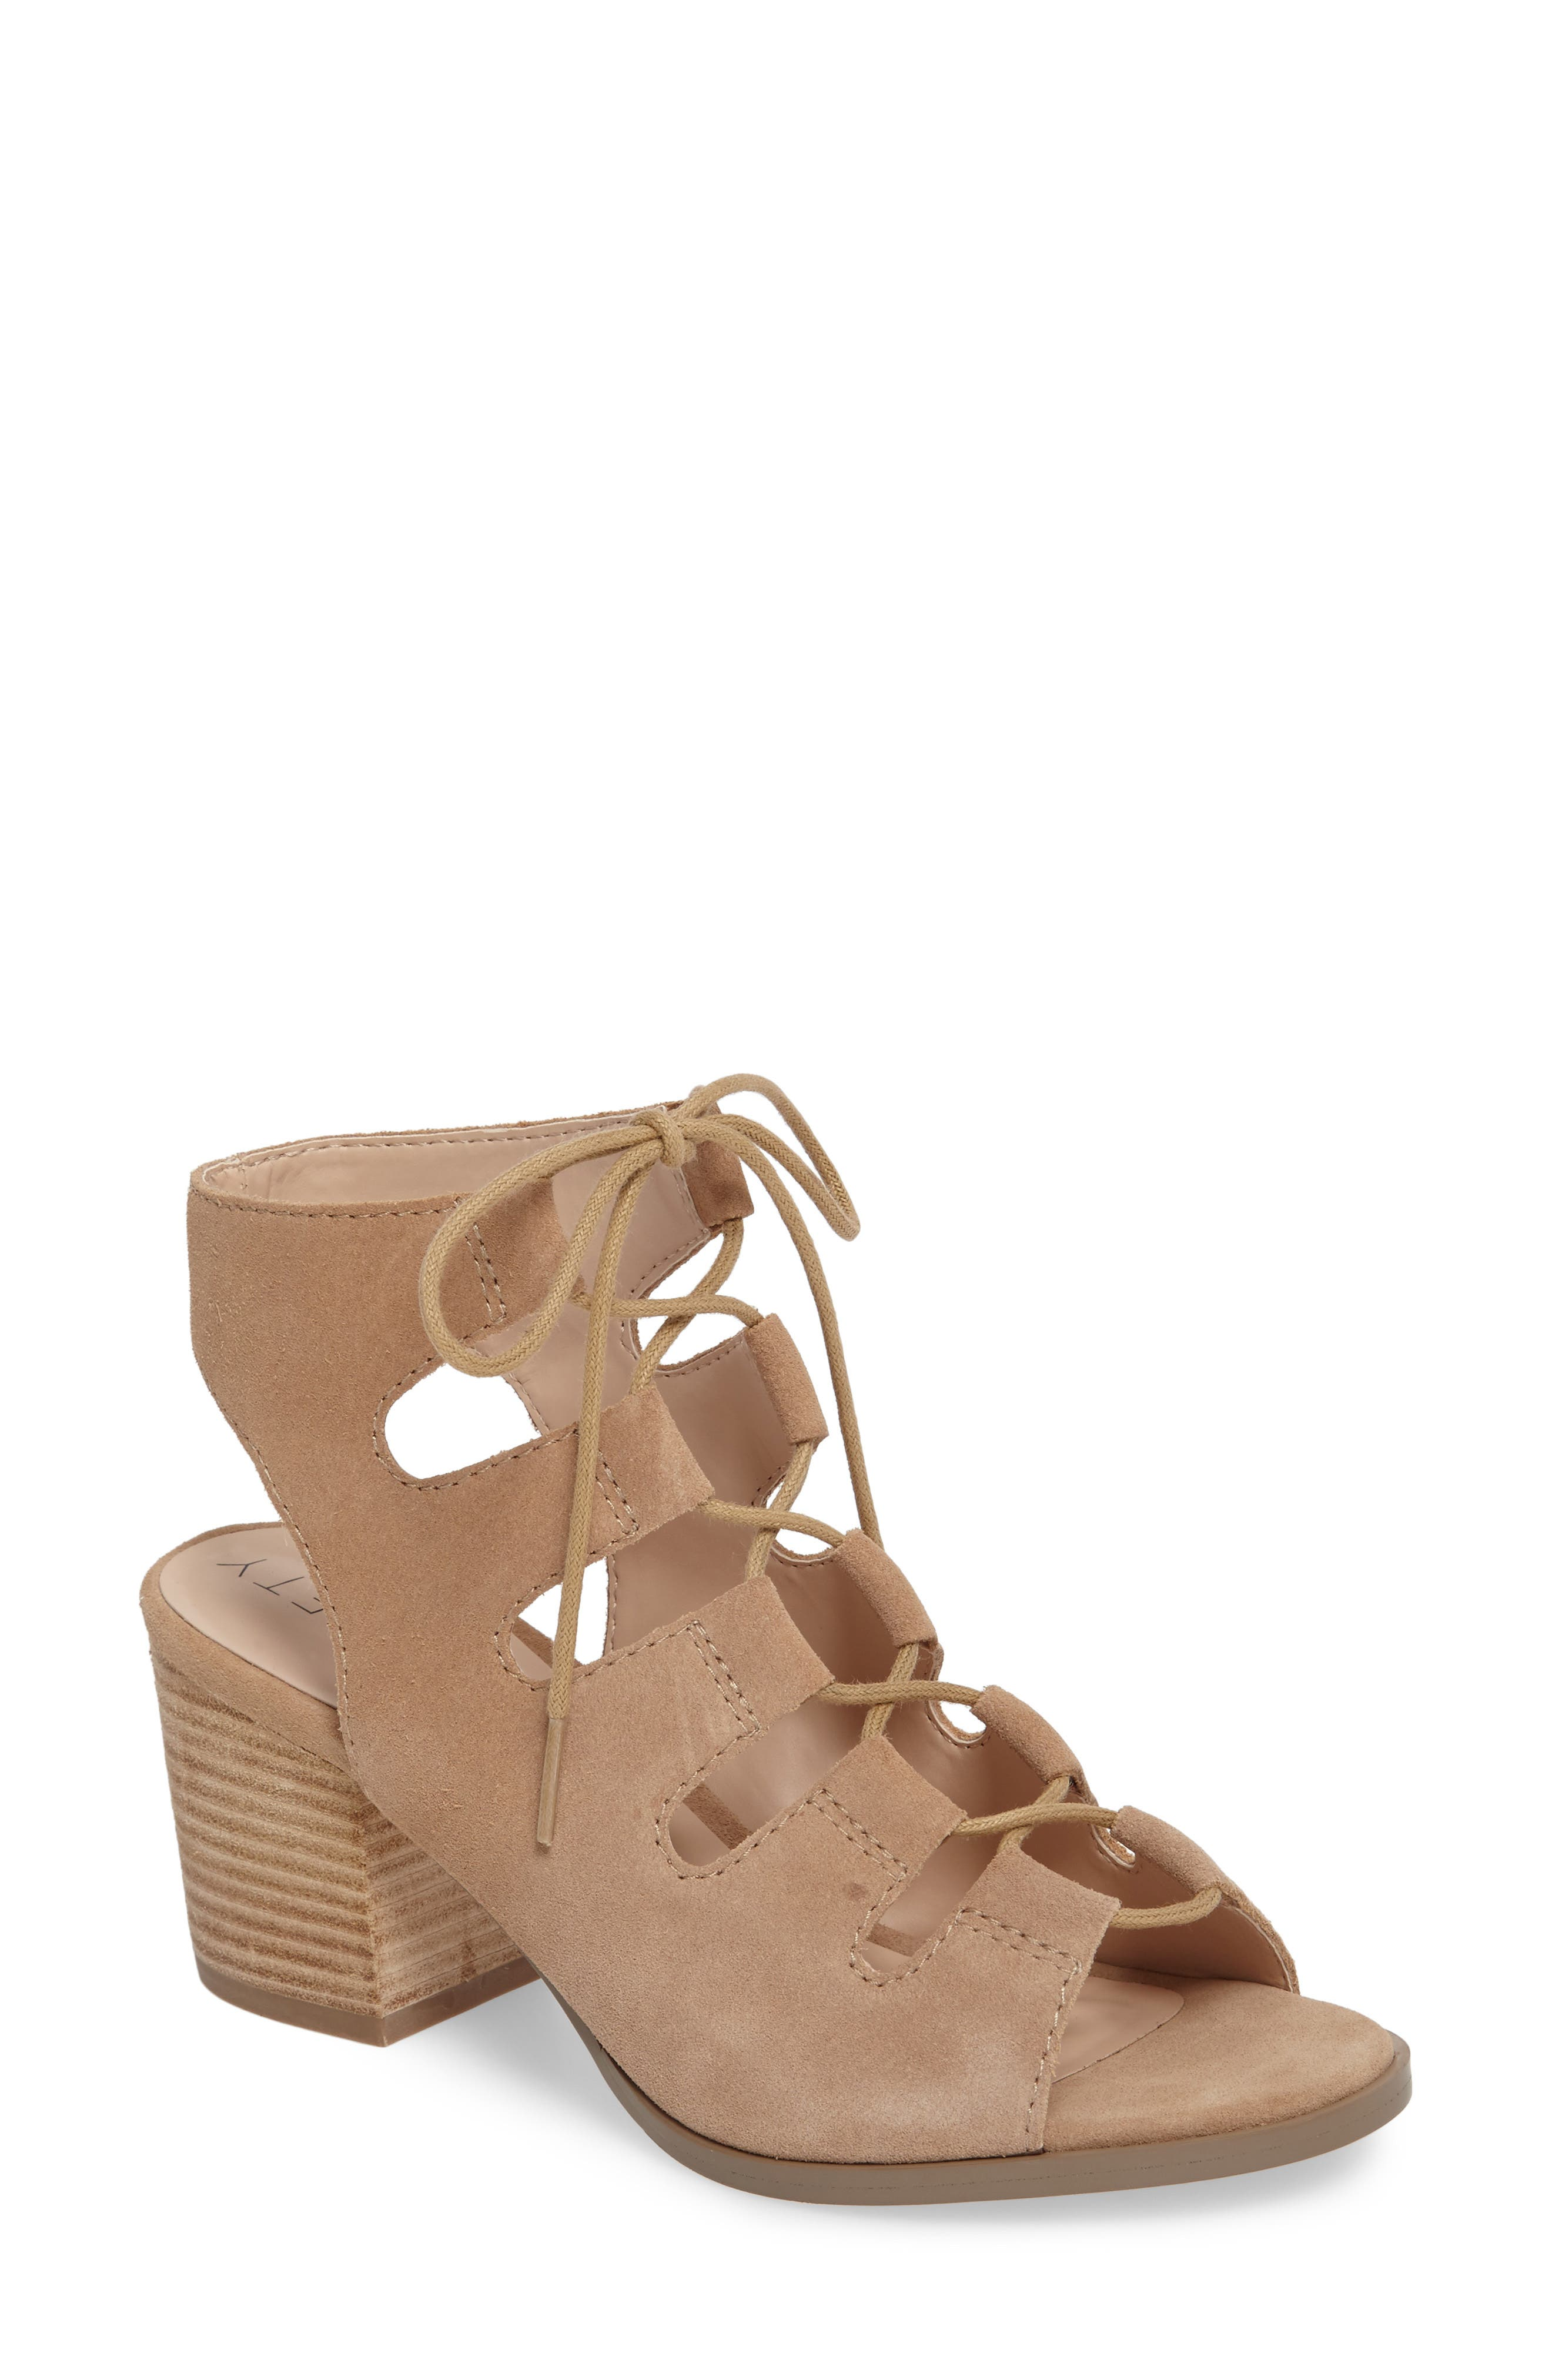 Alternate Image 1 Selected - Sole Society Rae Block Heel Sandal (Women)